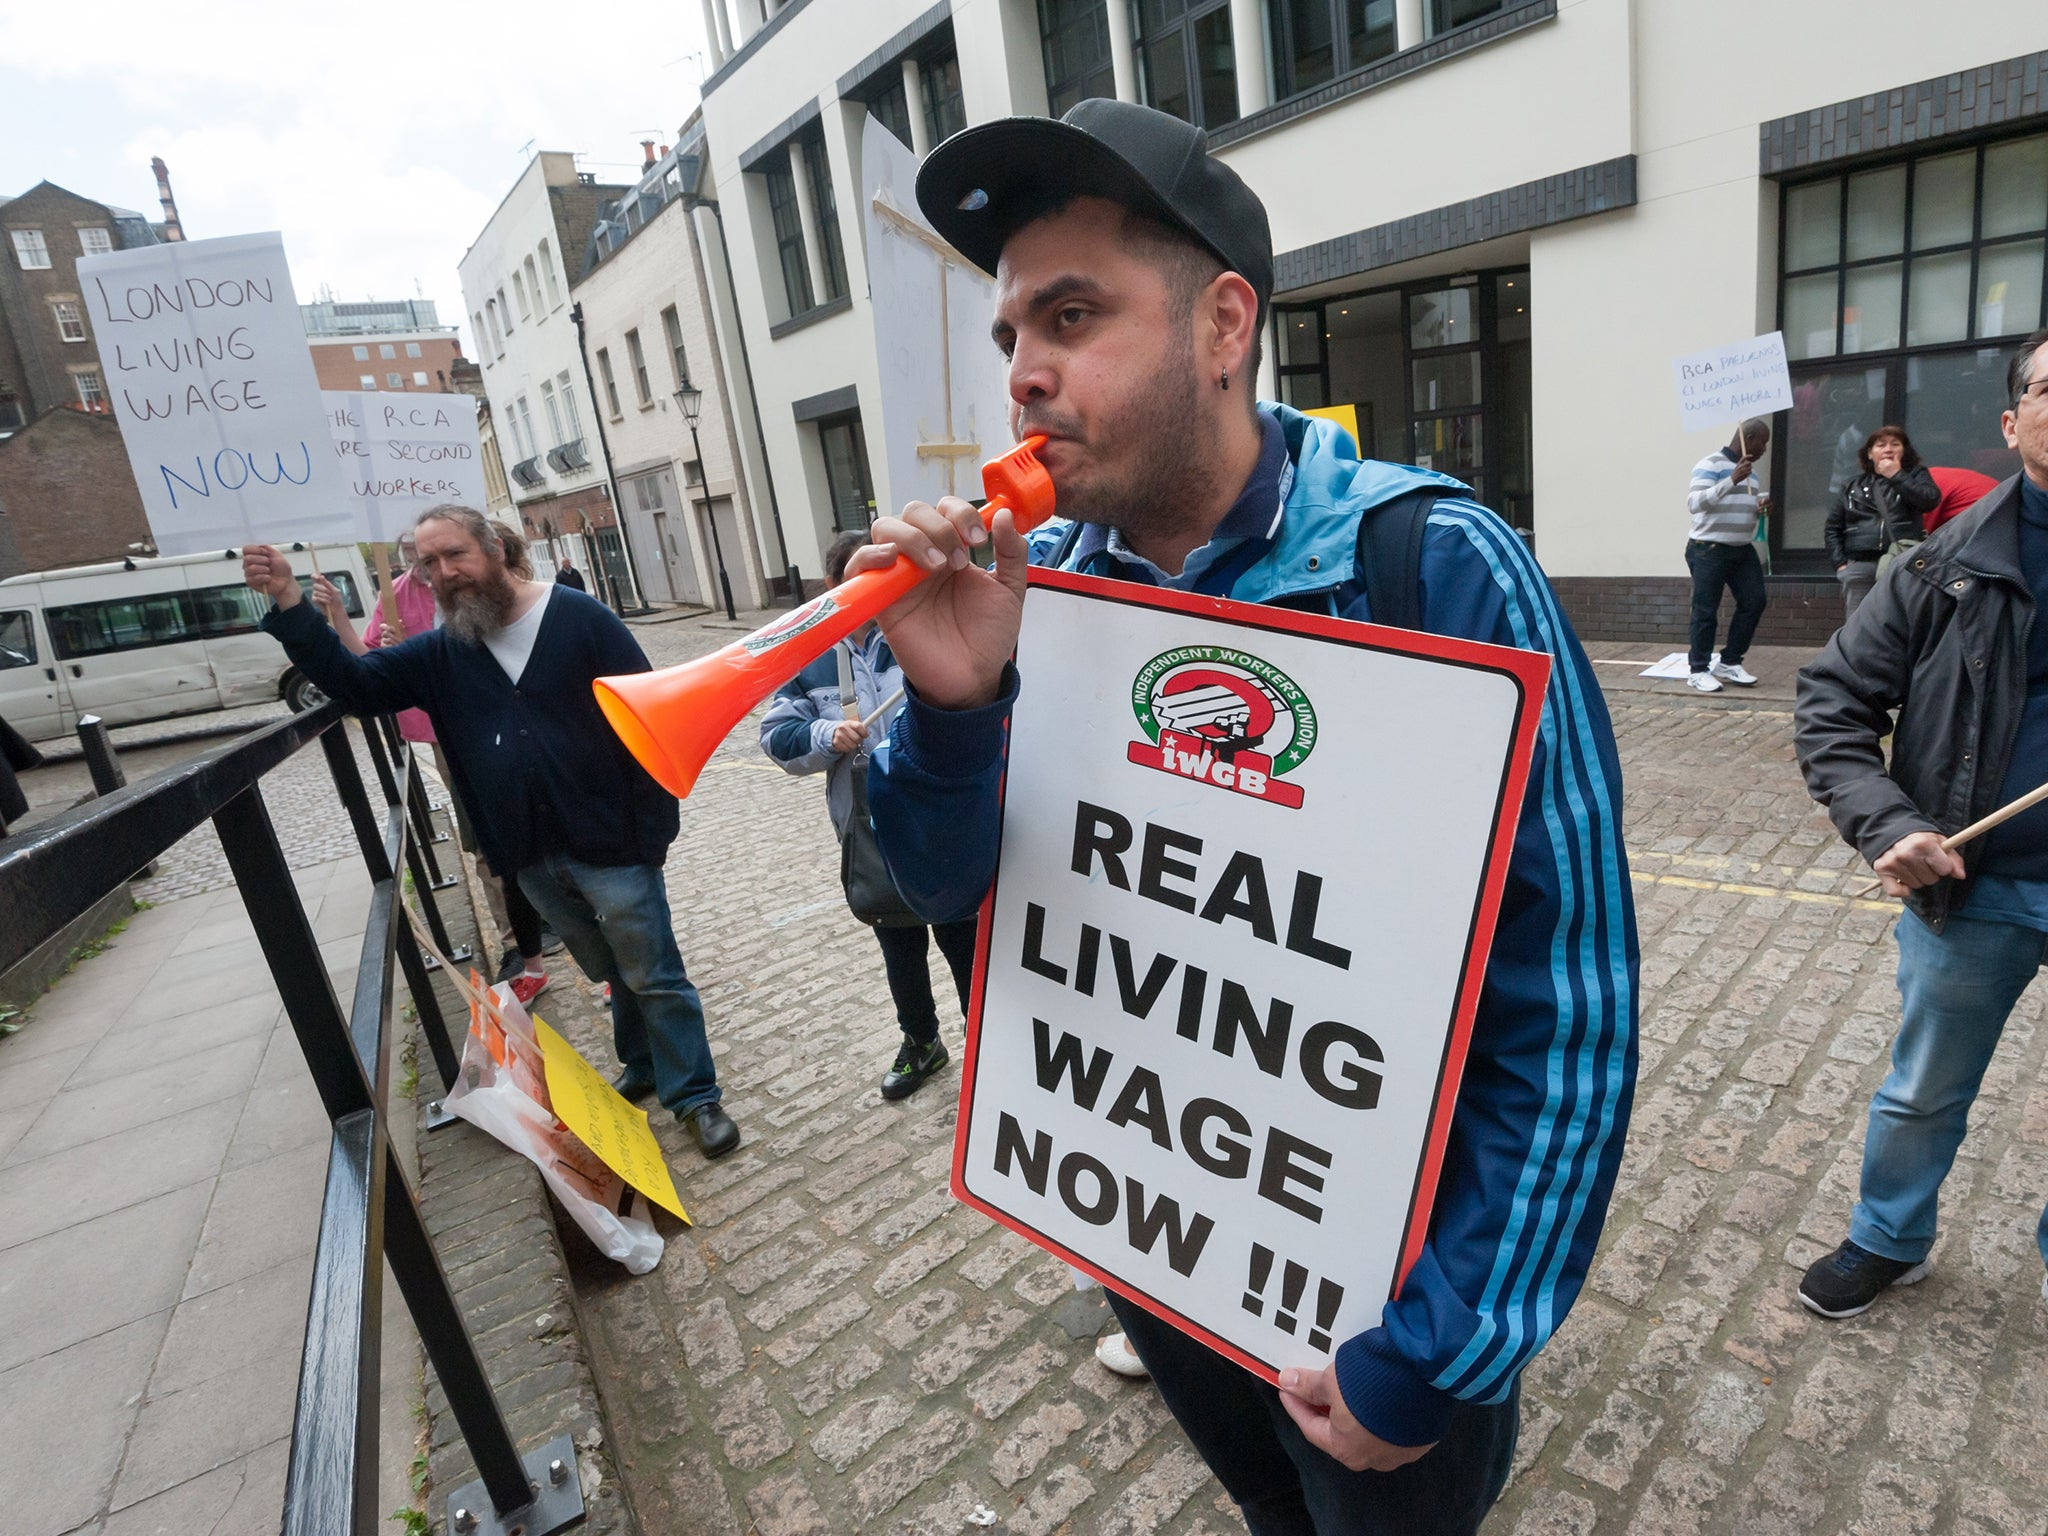 Many families are still struggling with in-work poverty – but the majority of companies still refuse to pay the real living wage